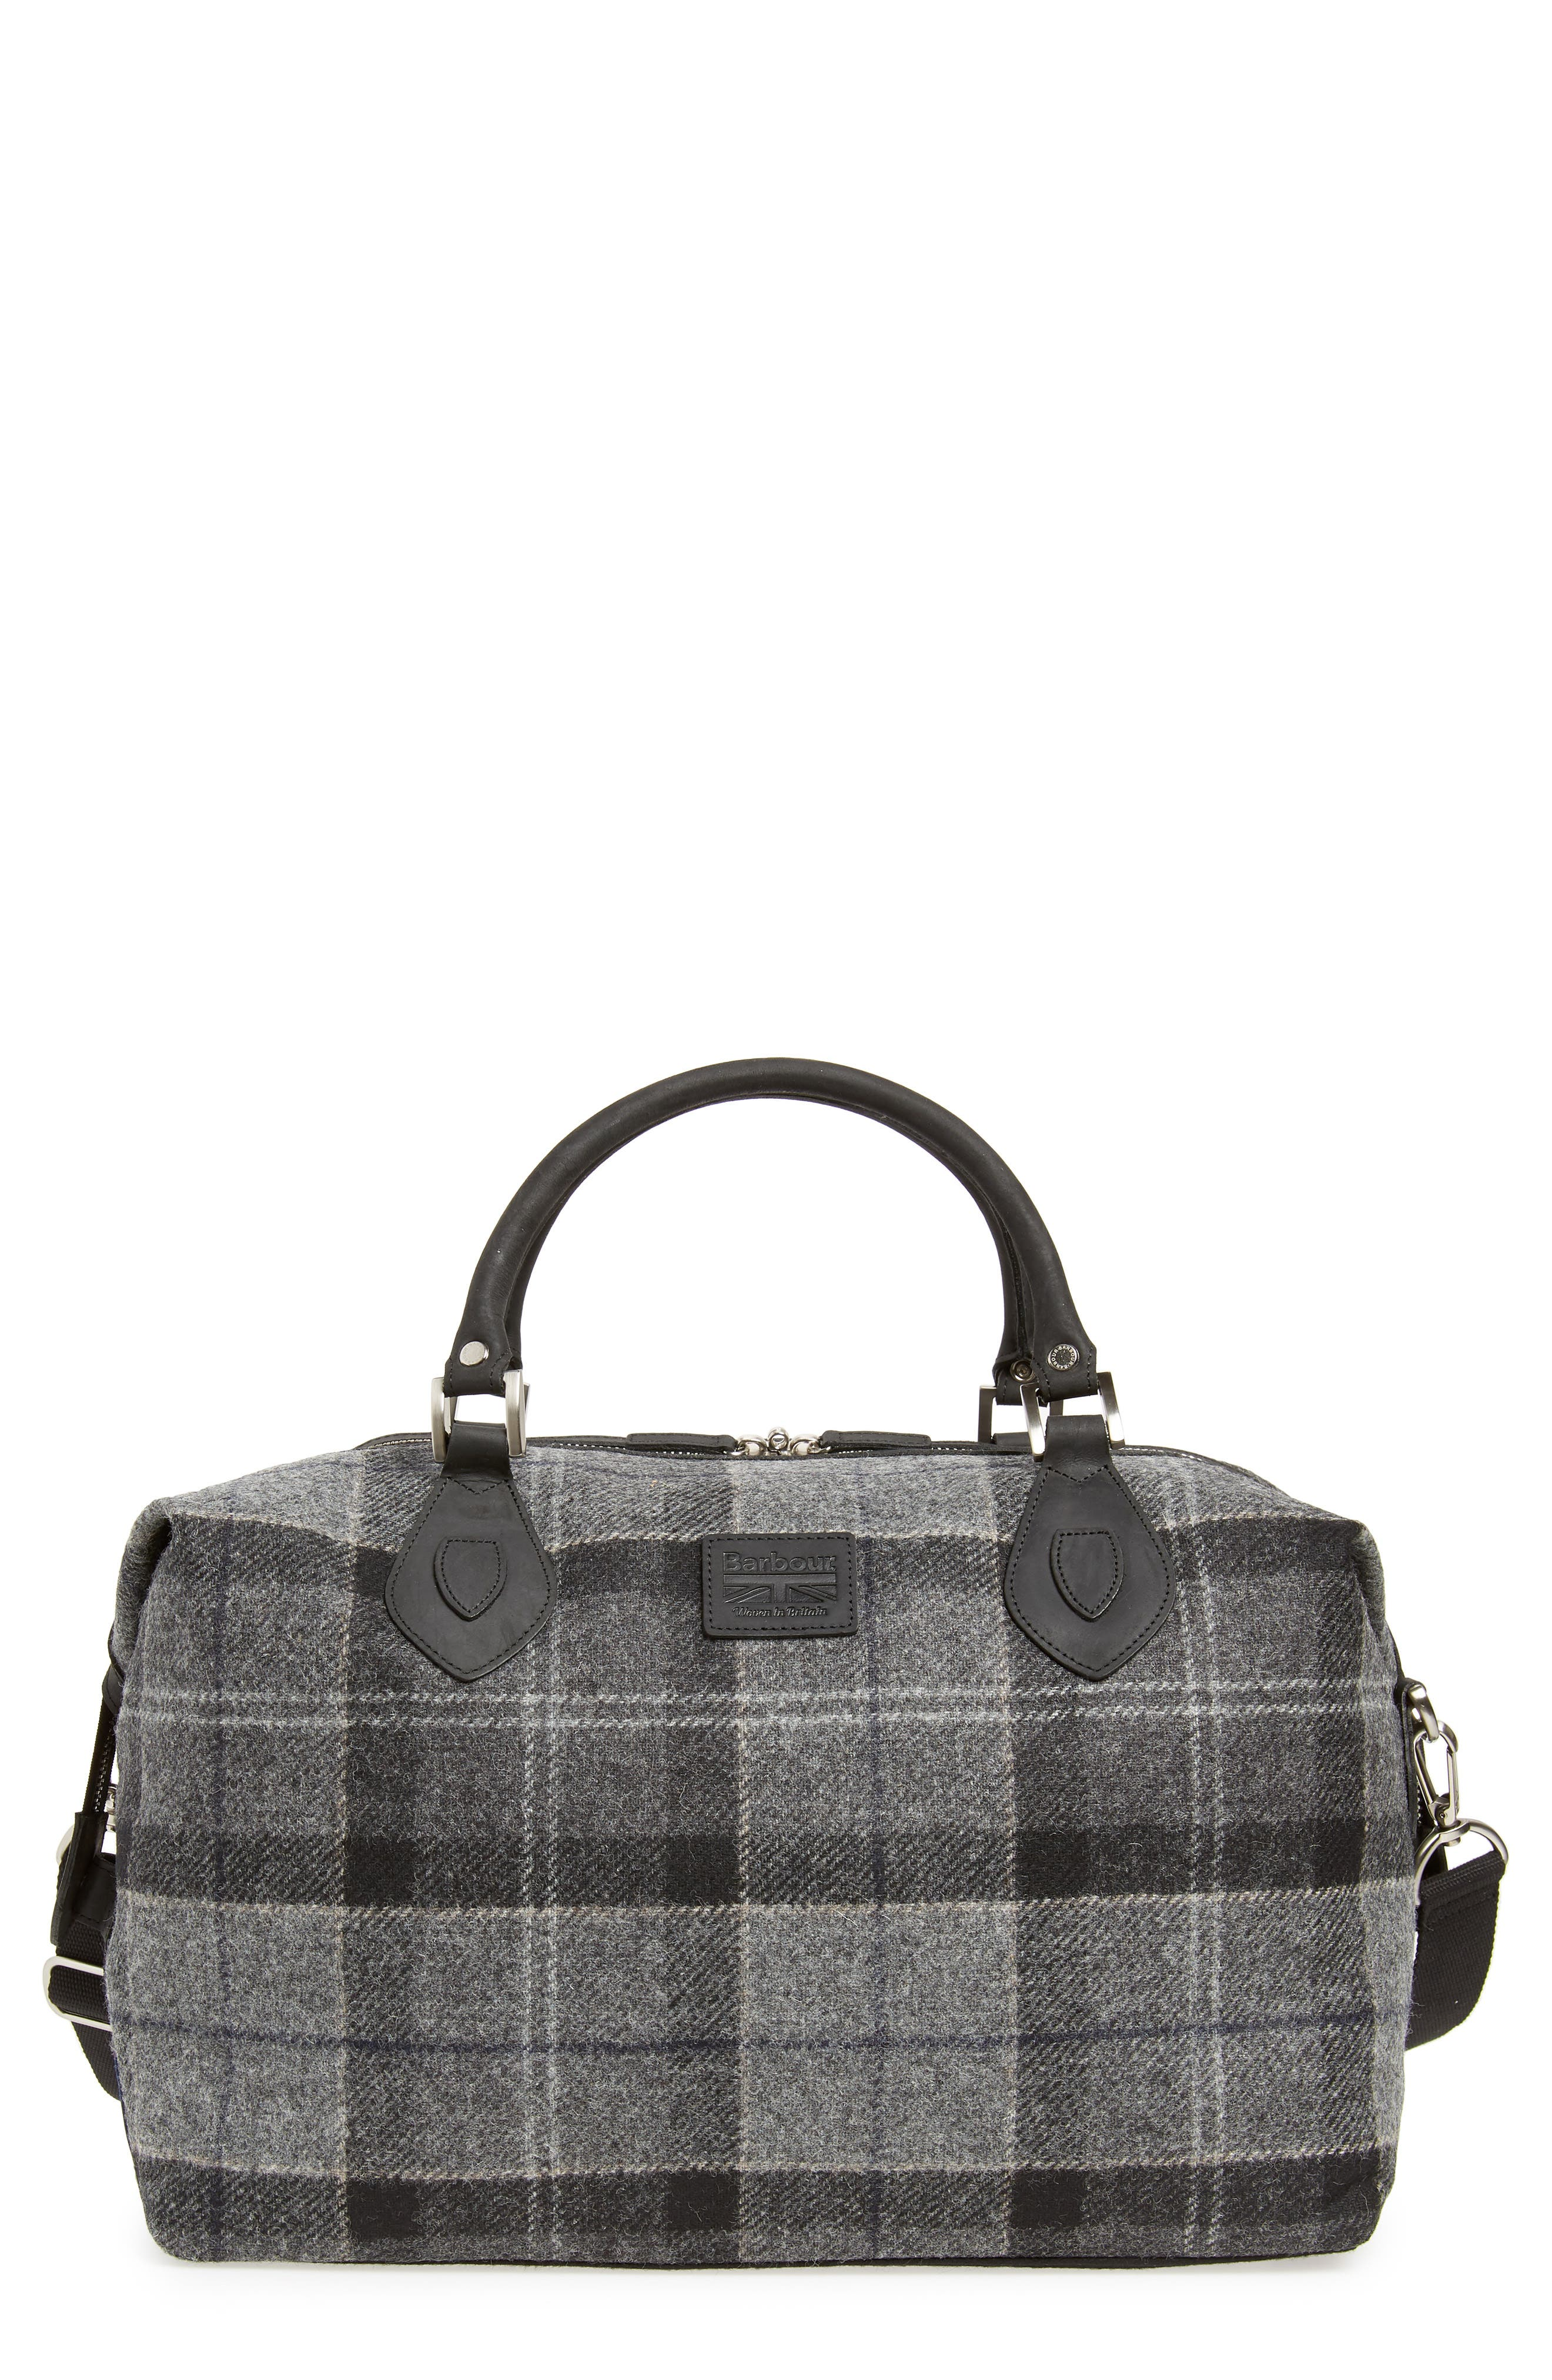 Shadow Duffel Bag,                             Main thumbnail 1, color,                             BLACK/ GREY TARTAN